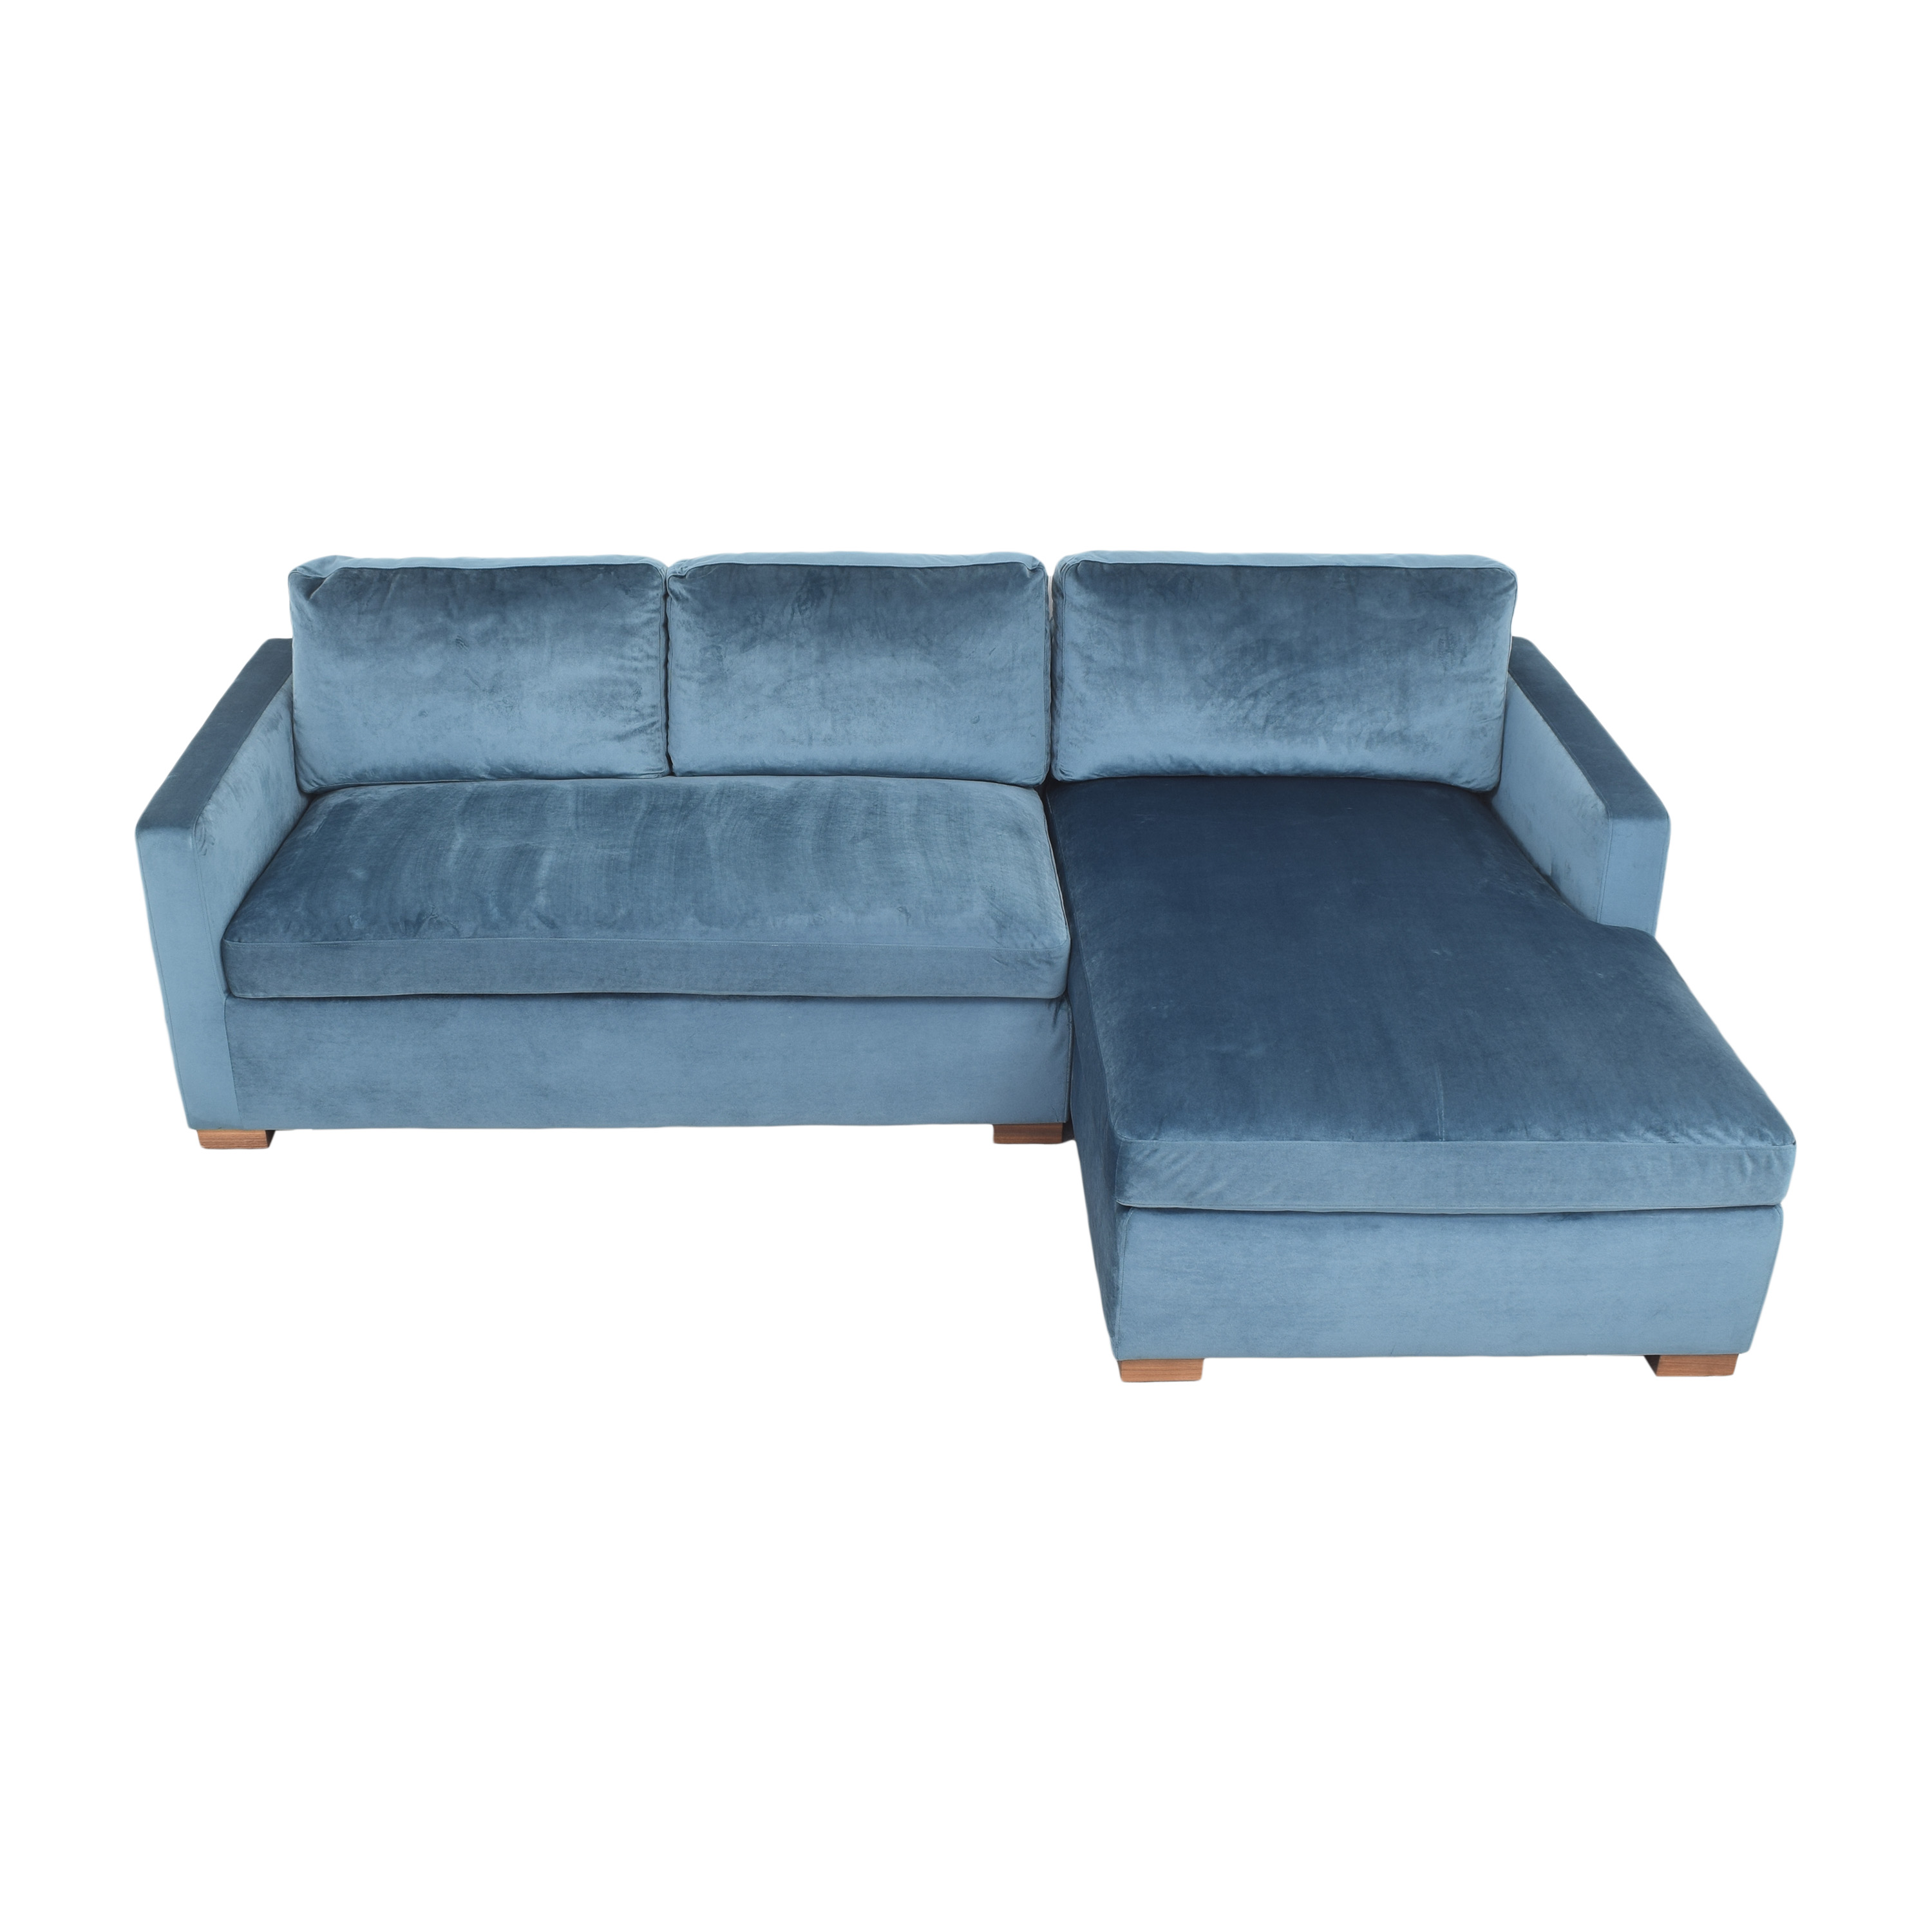 Interior Define Interior Define Charly Sectional Sofa with Chaise for sale